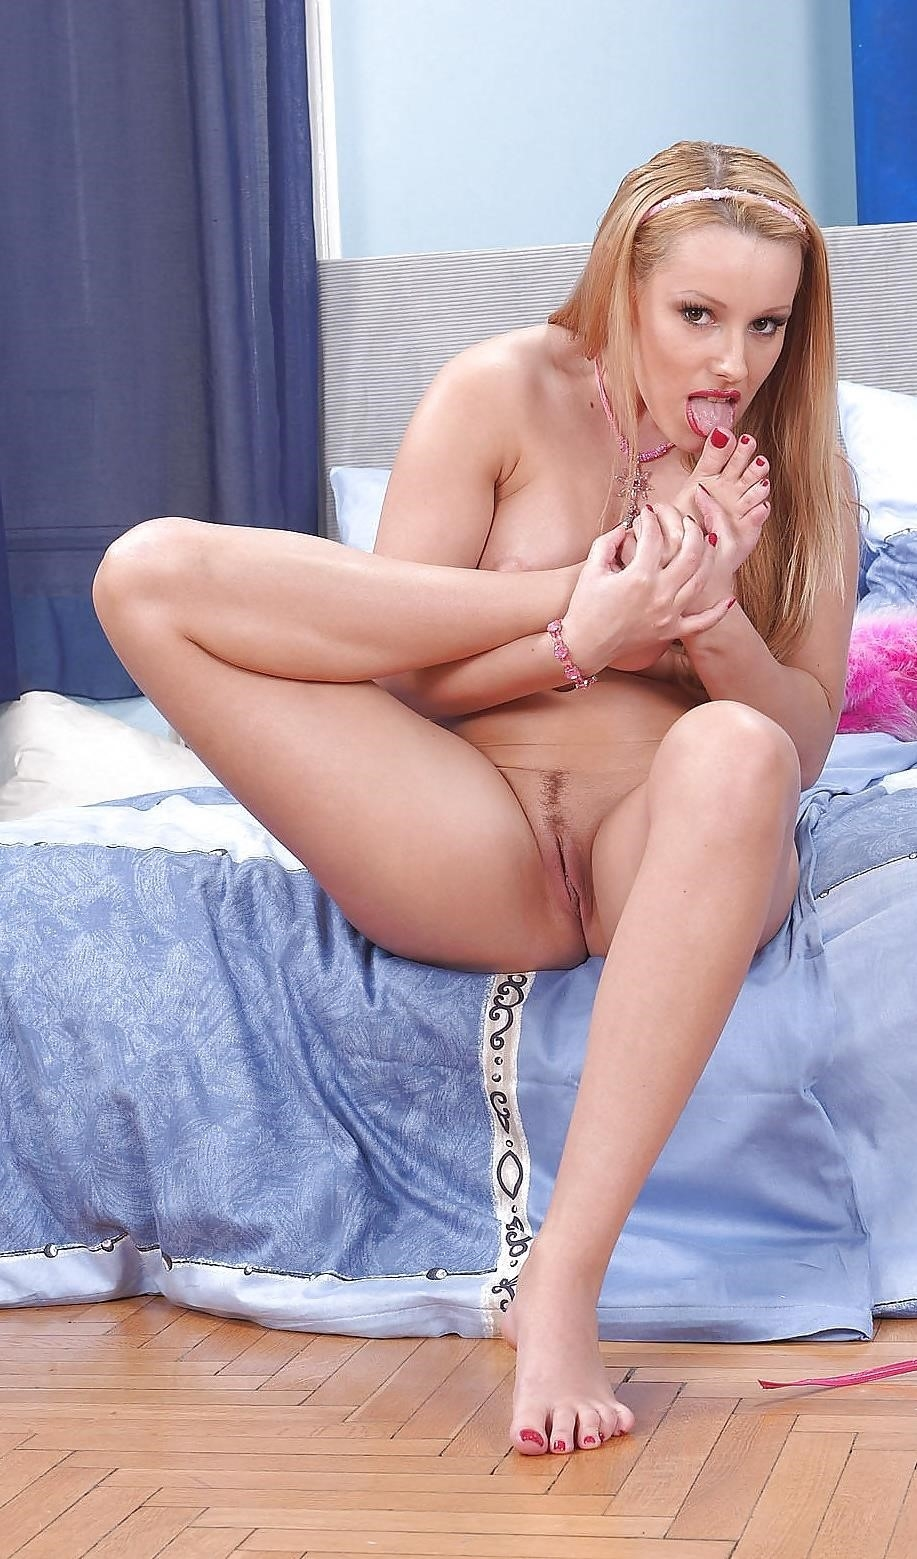 Girl licking own clit-7337